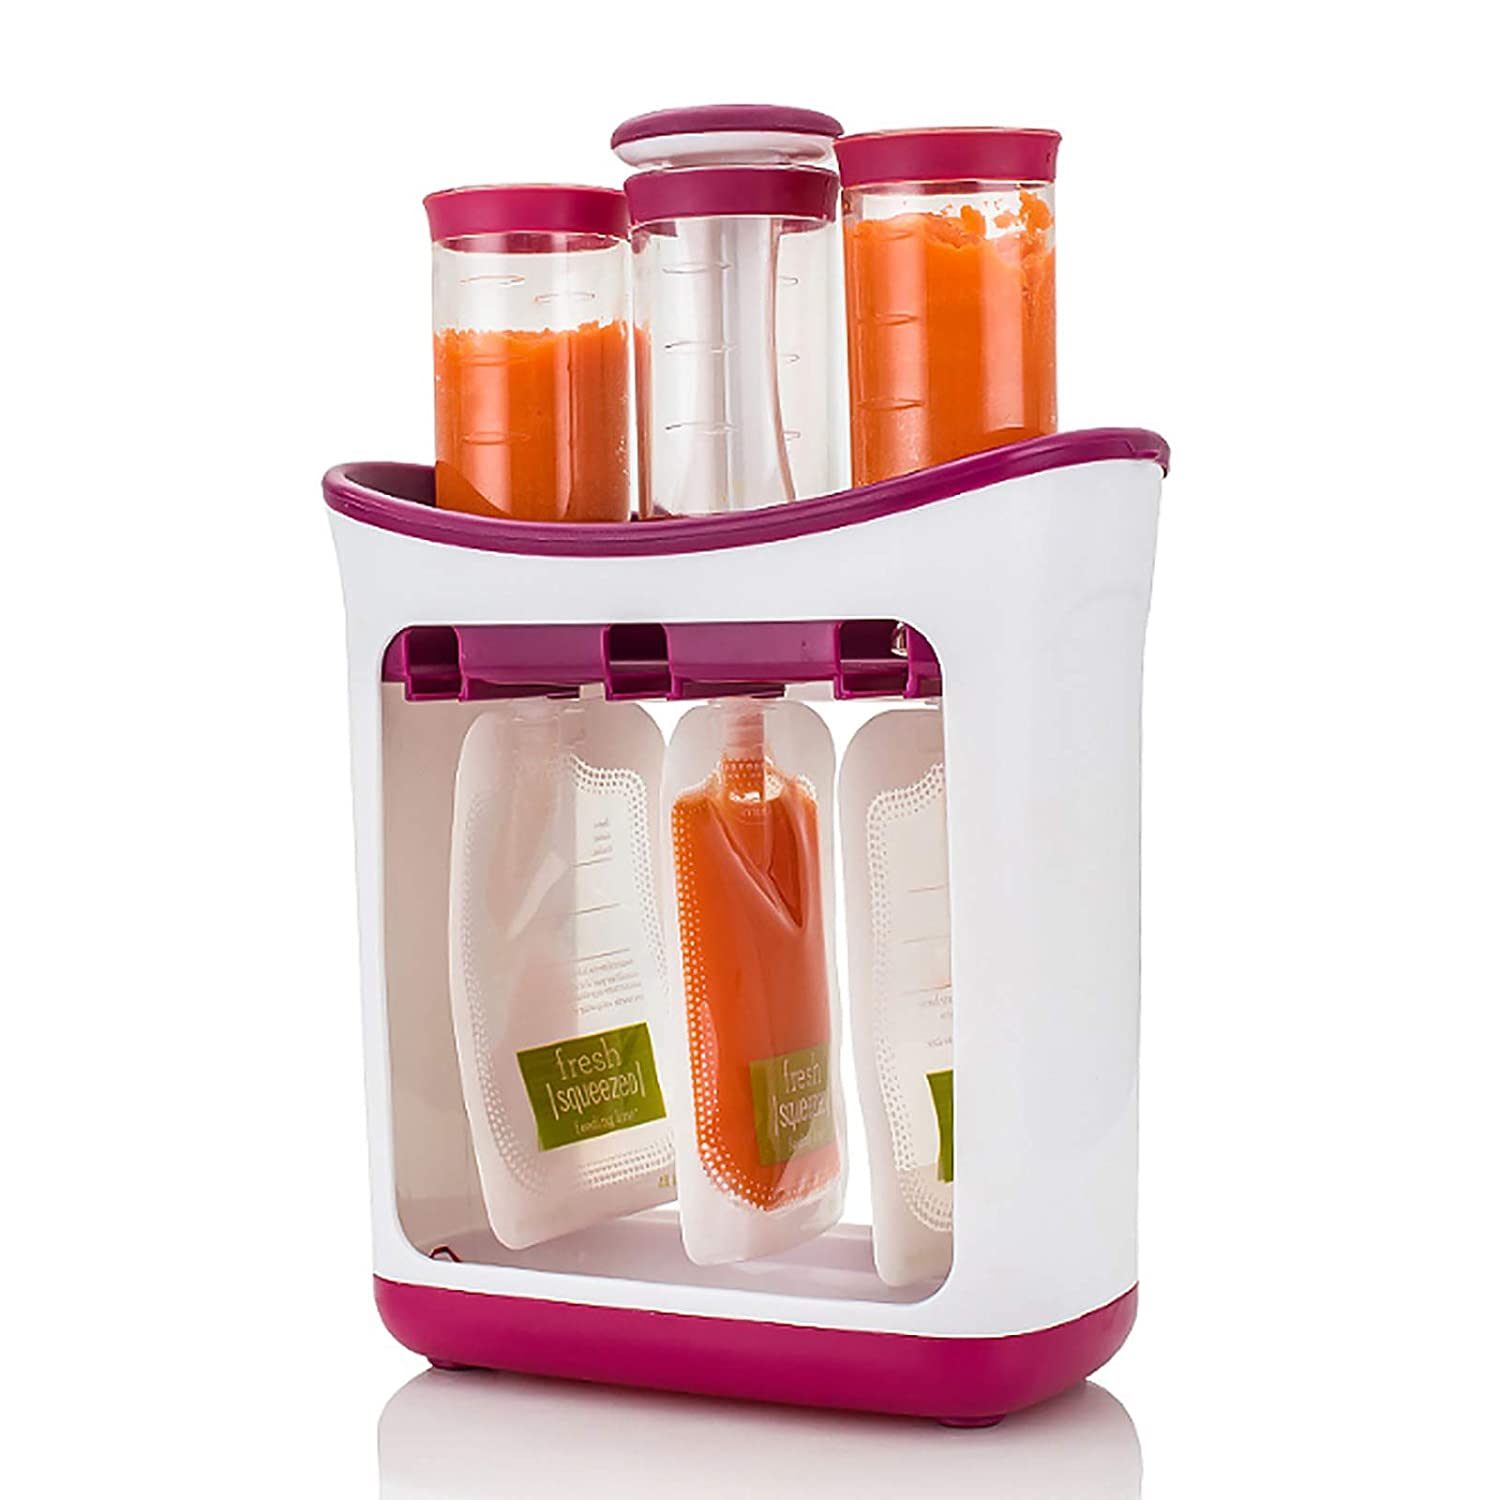 Queen.Y Baby Food Maker, Baby Food Squeeze Station with Storage Bags, Food- Grade Material Homemade DIY Fresh Fruit Juice Squeeze Station